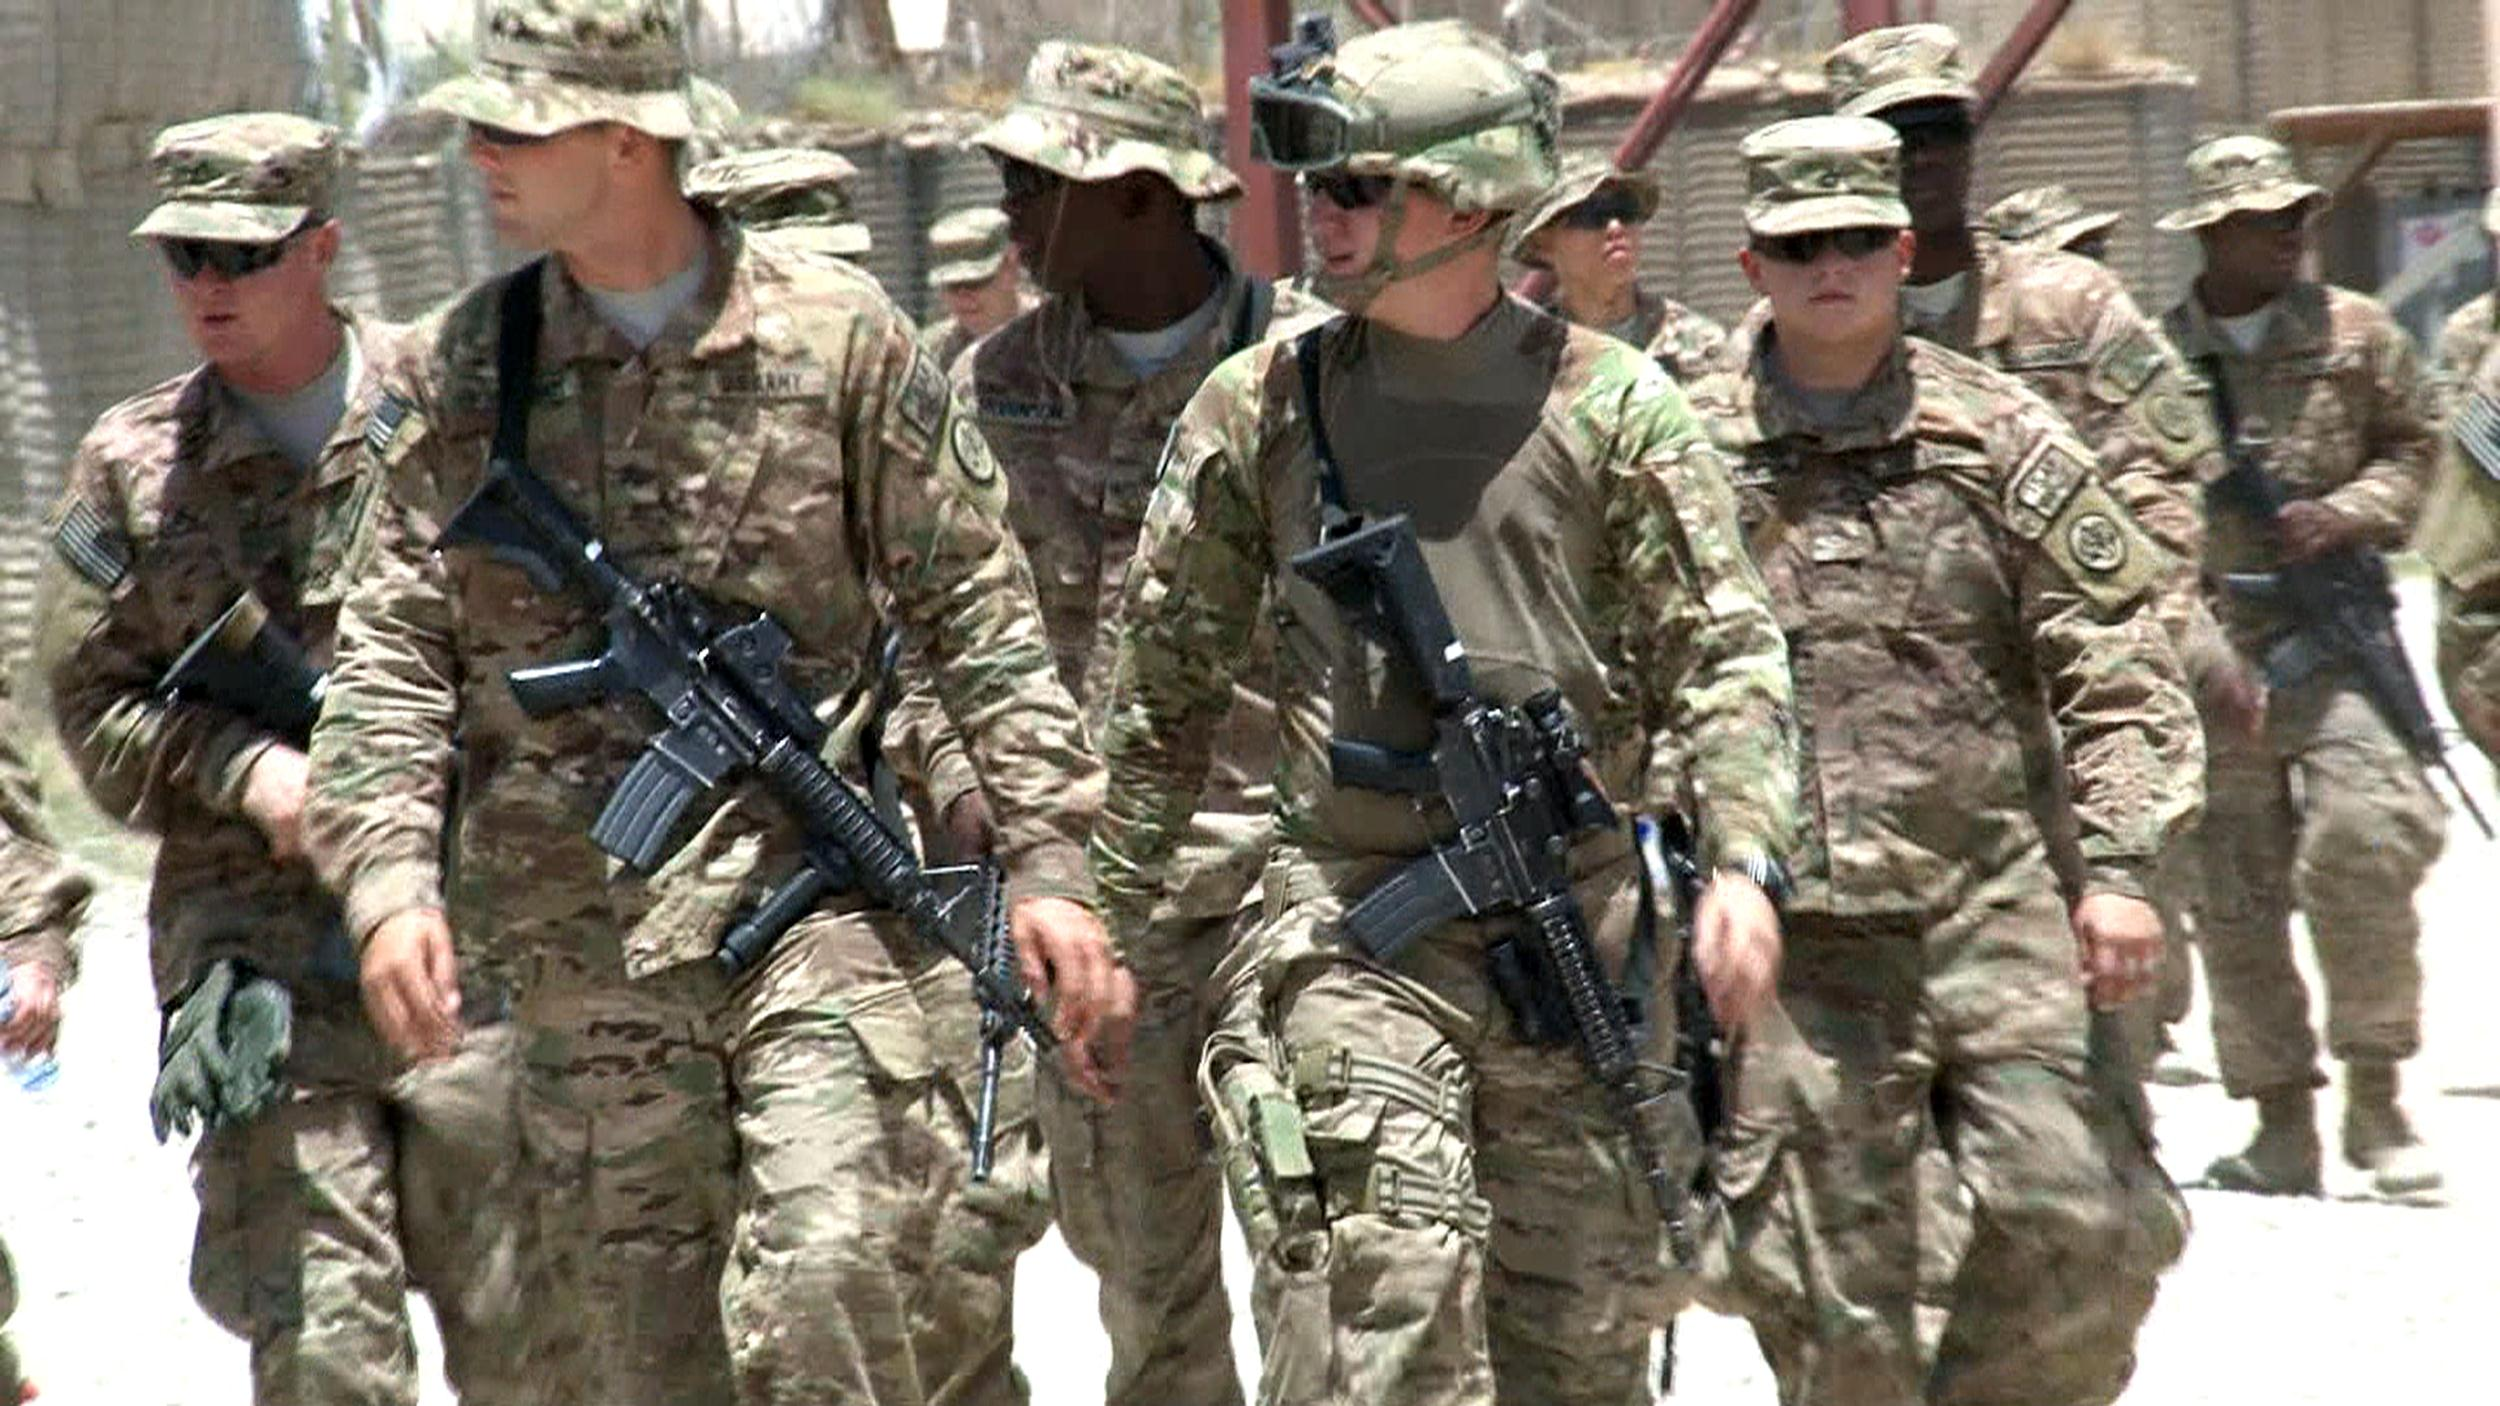 Image: The 3rd Brigade Combat Team, of the 10th Mountain Division